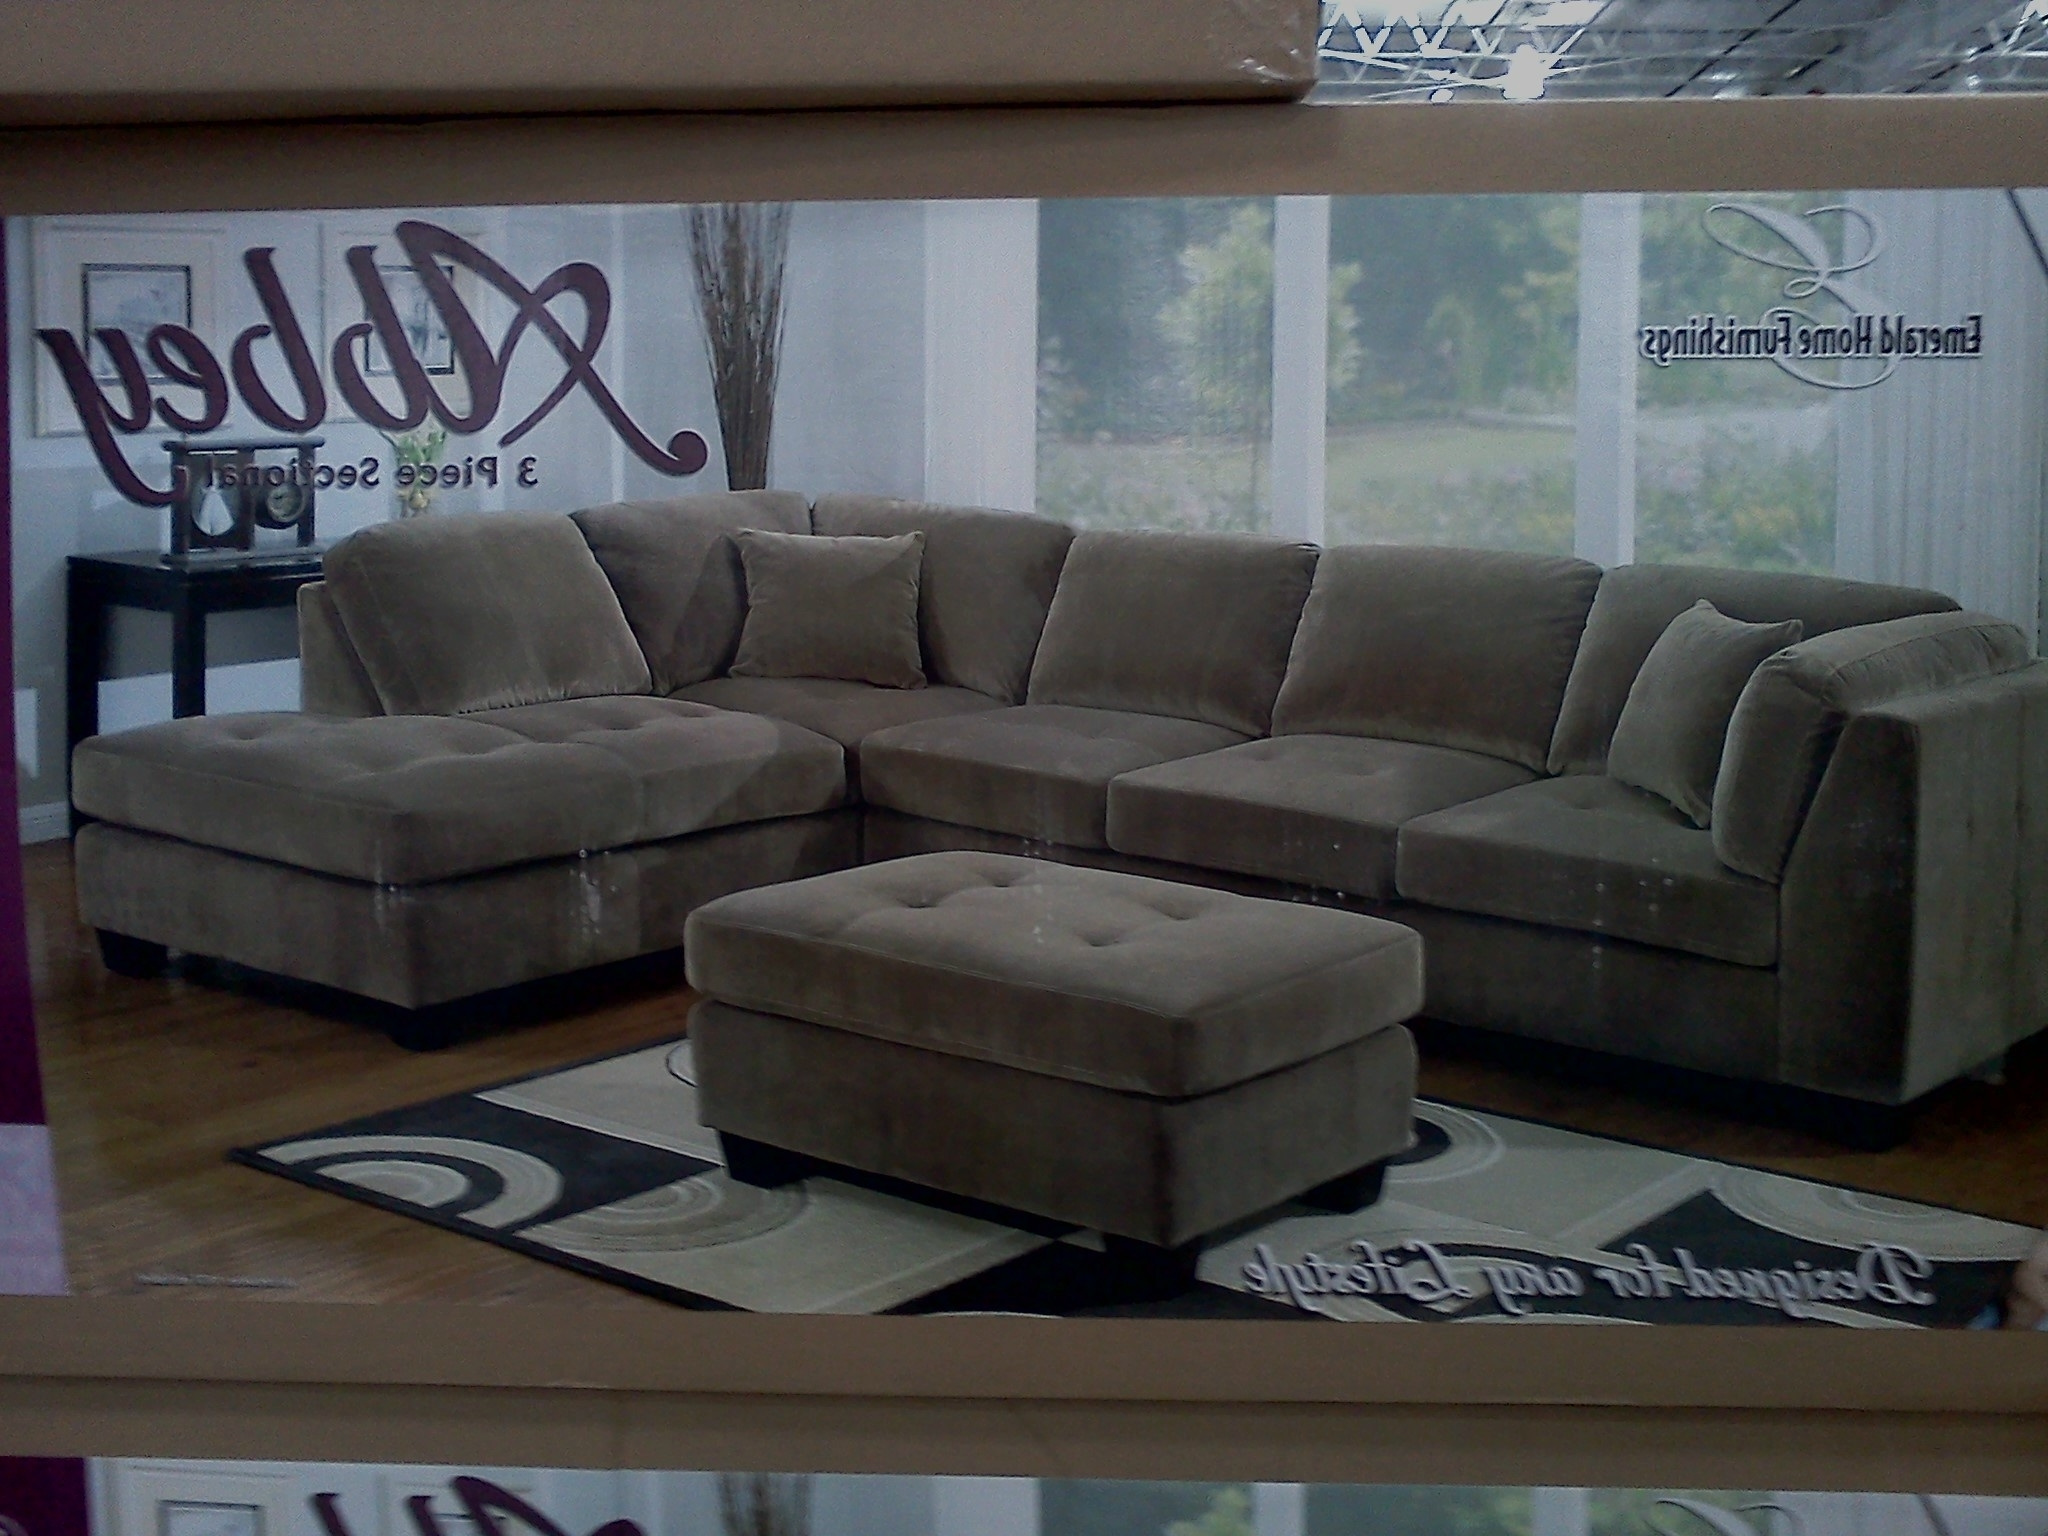 Most Recent Sectional Sofas At Costco Intended For Costco Emerald Home Modular Sectional Slickdeals – Kaf Mobile (View 17 of 20)